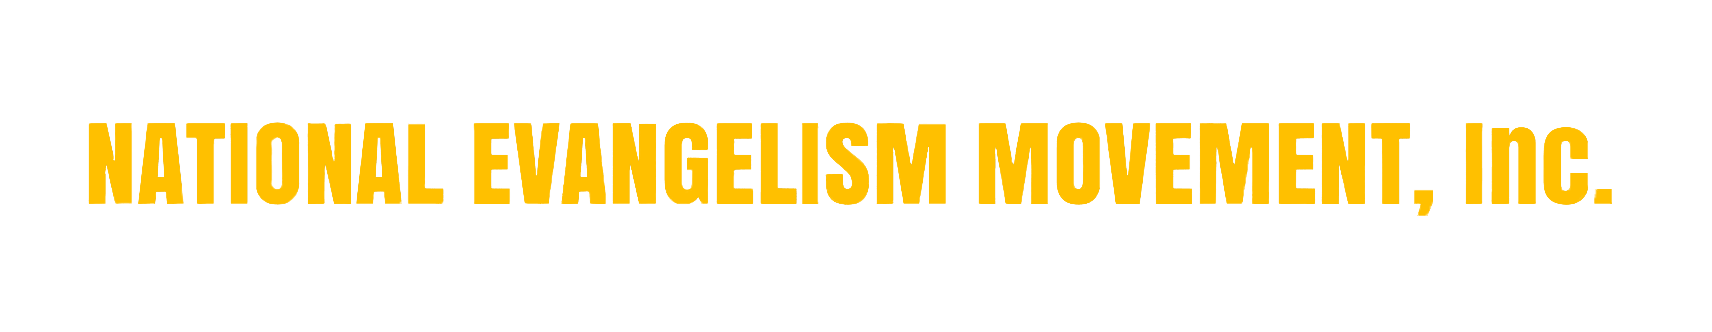 National Evangelism Movement Logo